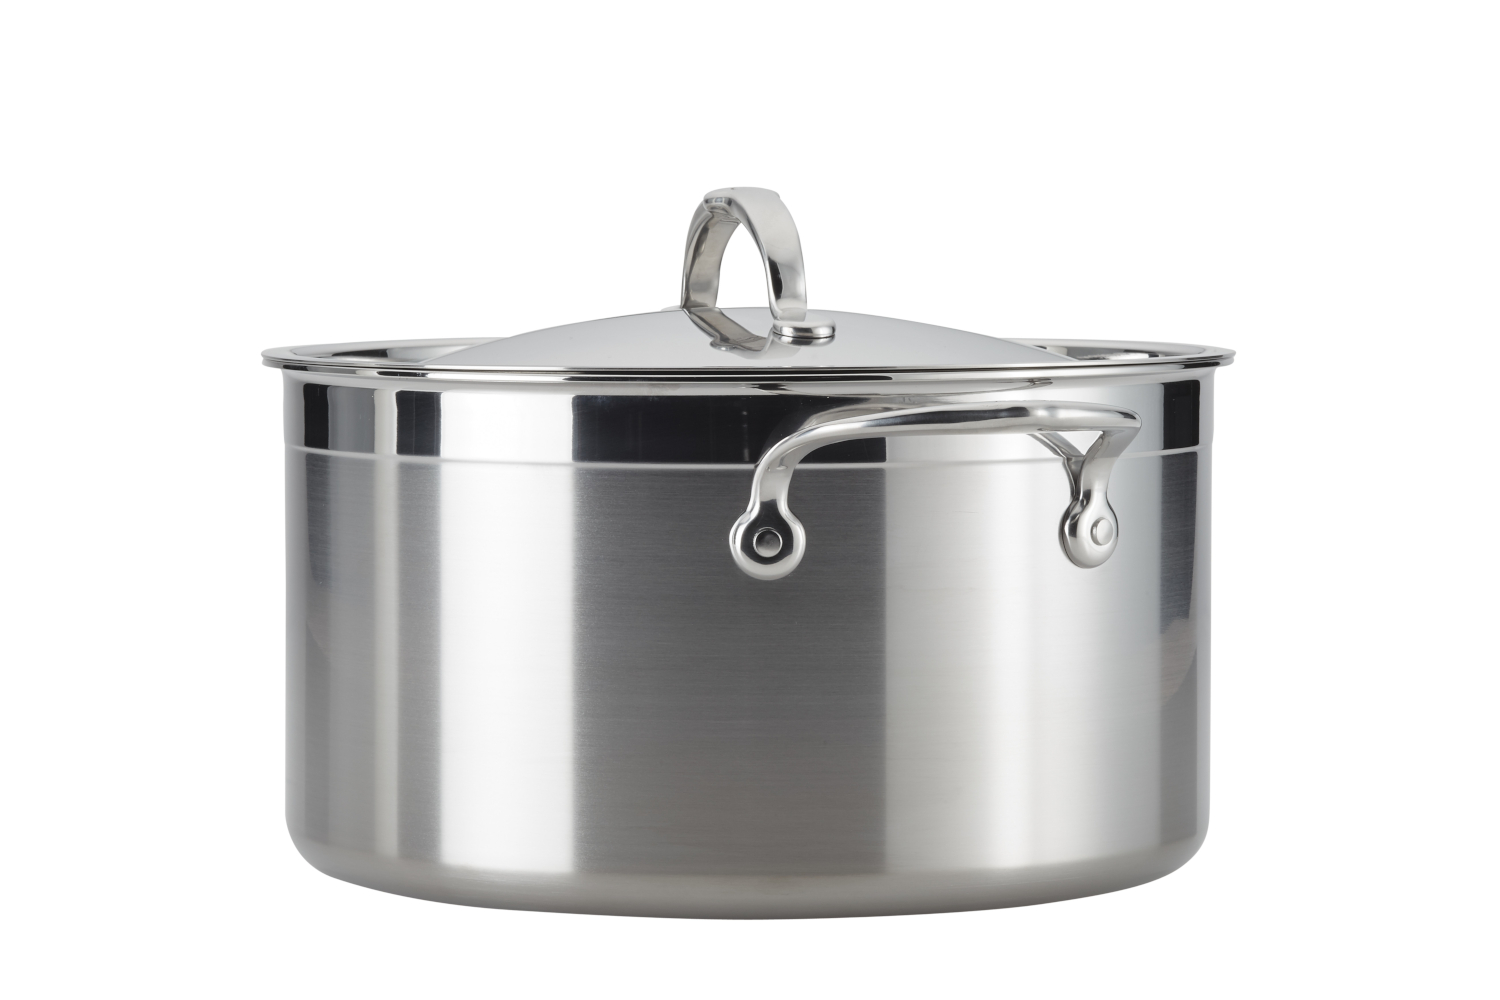 Hestan ProBond Forged Stainless Steel 8 qt. Stock Pot w/Lid